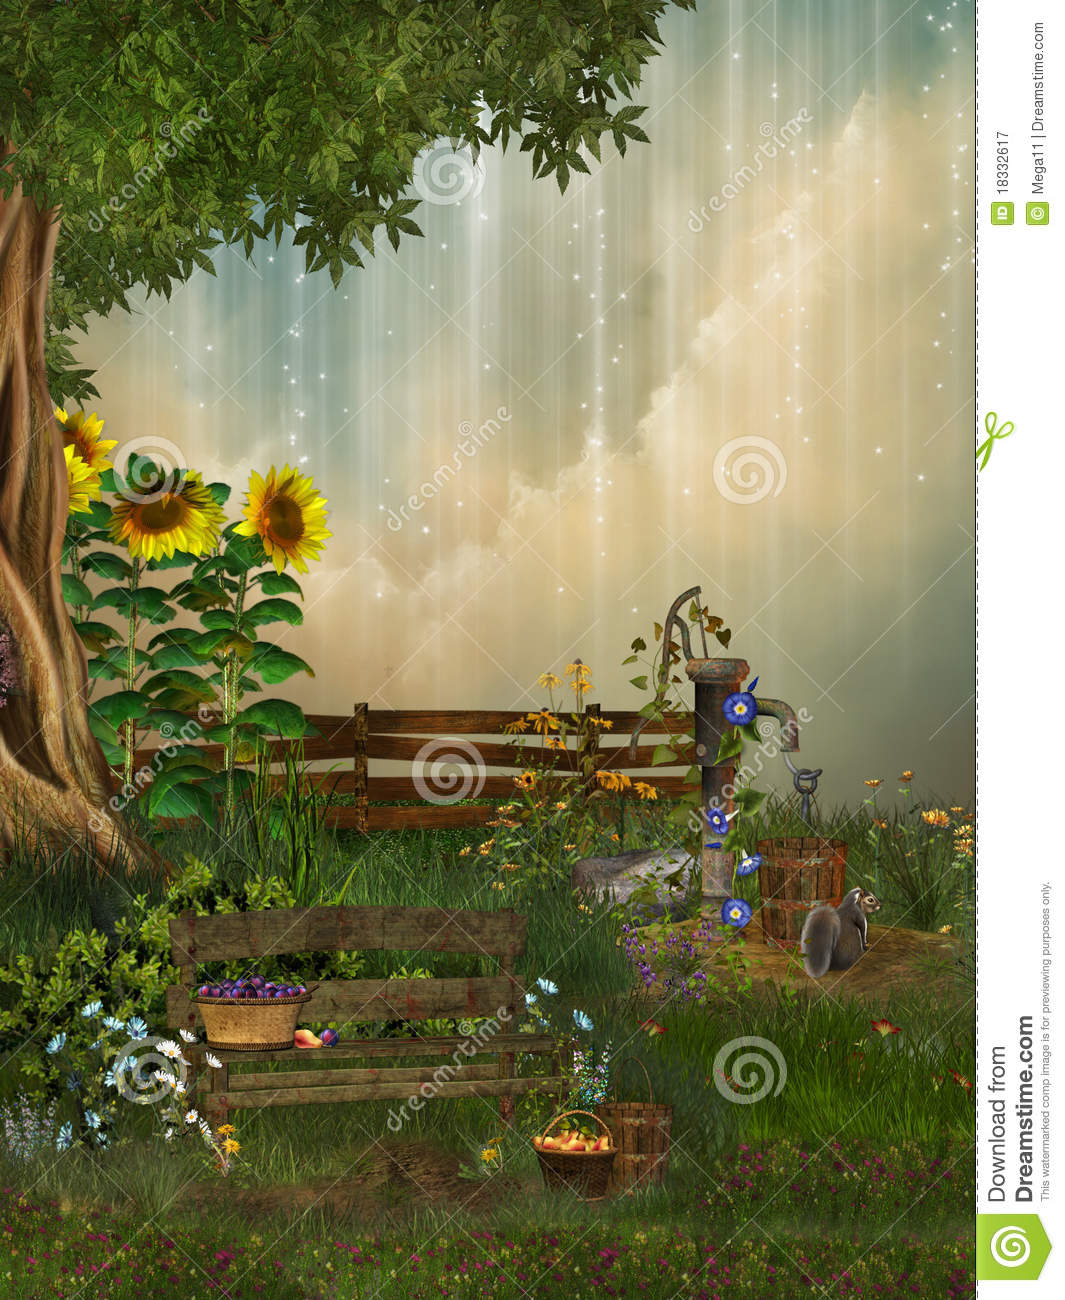 Fantasy Garden Royalty Free Stock Photography  Image 18332617